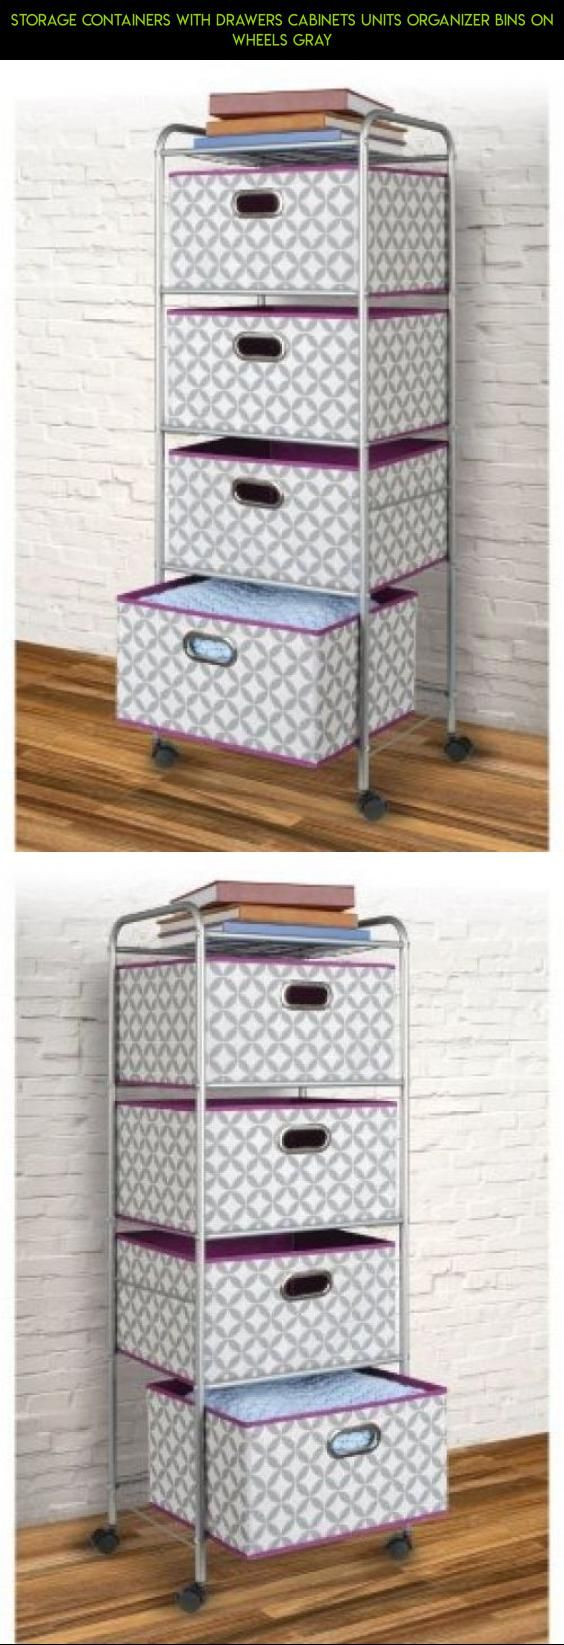 Storage containers with drawers cabinets units organizer bins on